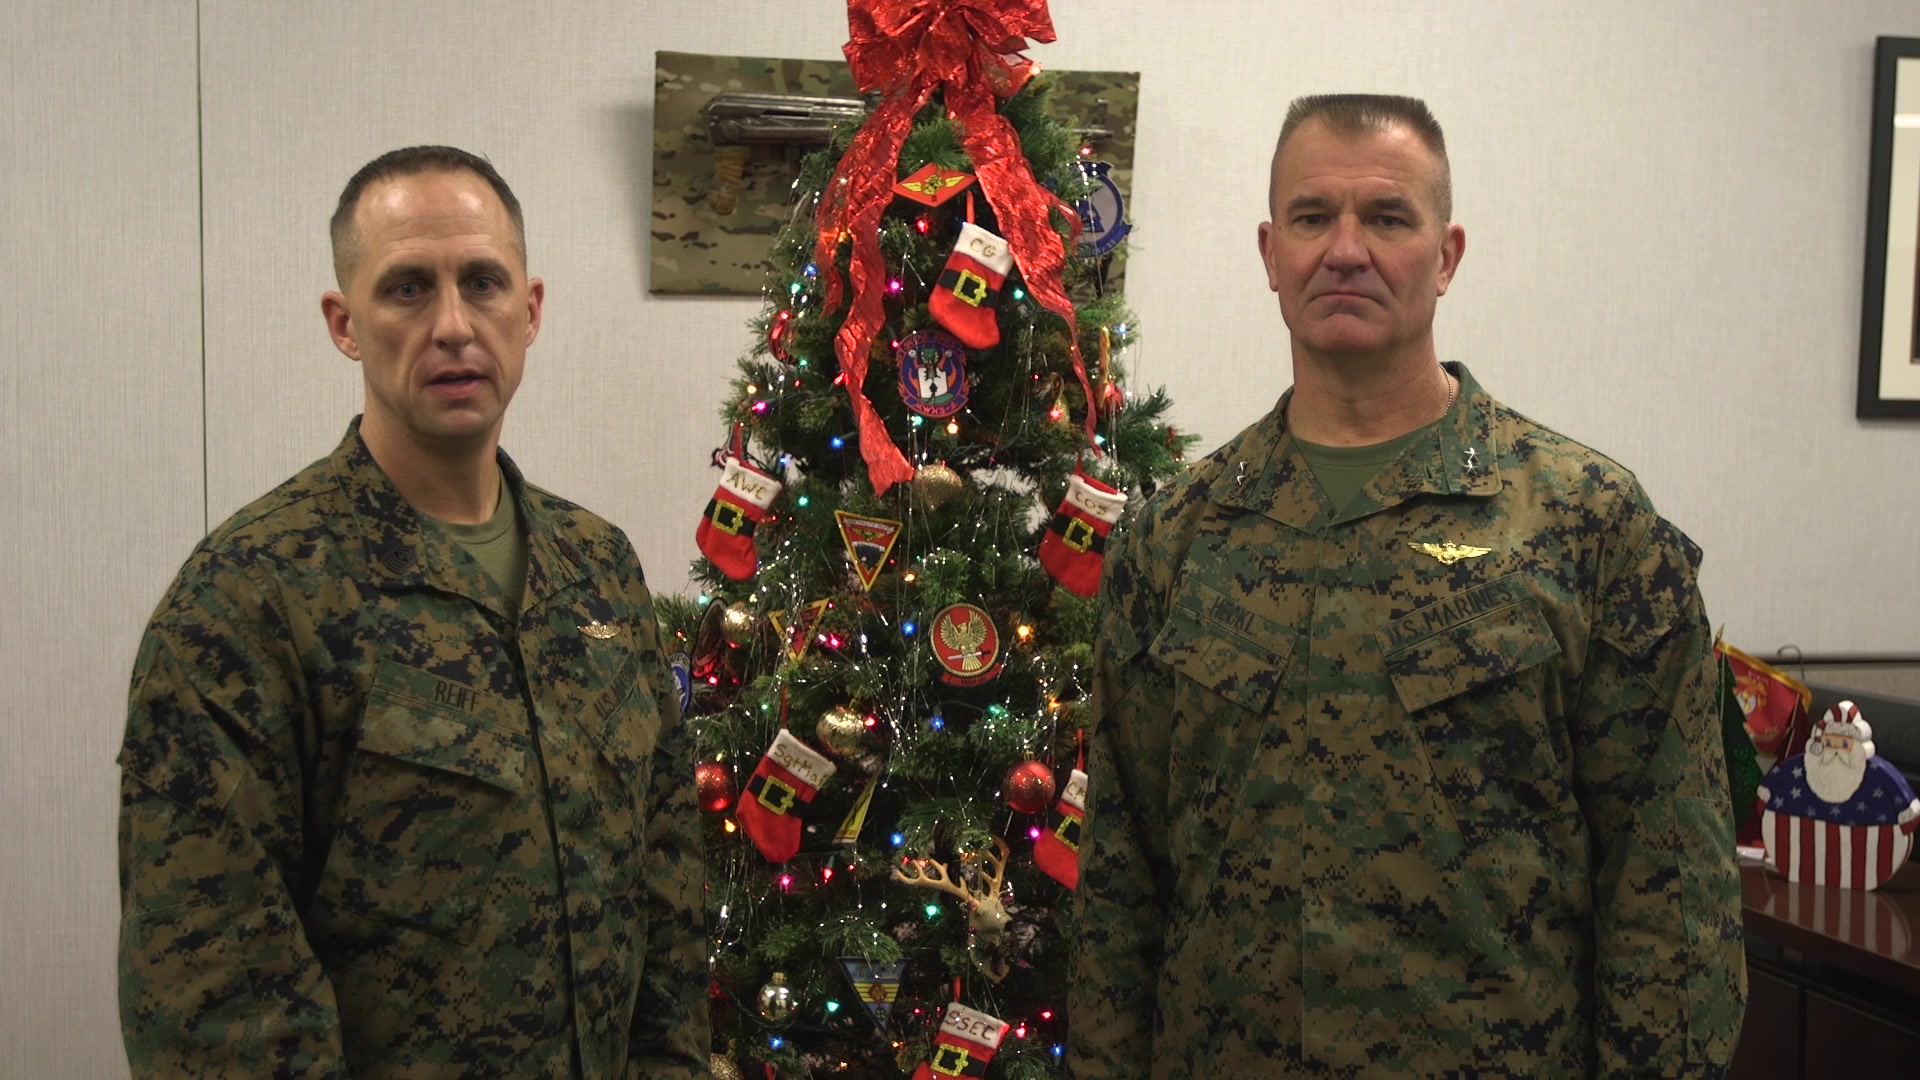 Marine Maj. Gen. Karsten S. Heckl, the 2nd Marine Aircraft Wing commanding general, and Sgt. Maj. Jacob Reiff, the 2nd Marine Aircraft Wing sergeant major, pose for Christmas video at at Marine Corps Air Station Cherry Point, North Carolina, Dec. 13, 2019. The video encourages Marines, Sailors and their families to take time to recharge and be safe this holiday season. (U.S. Marine Corps video by Cpl. Paige C. Stade)